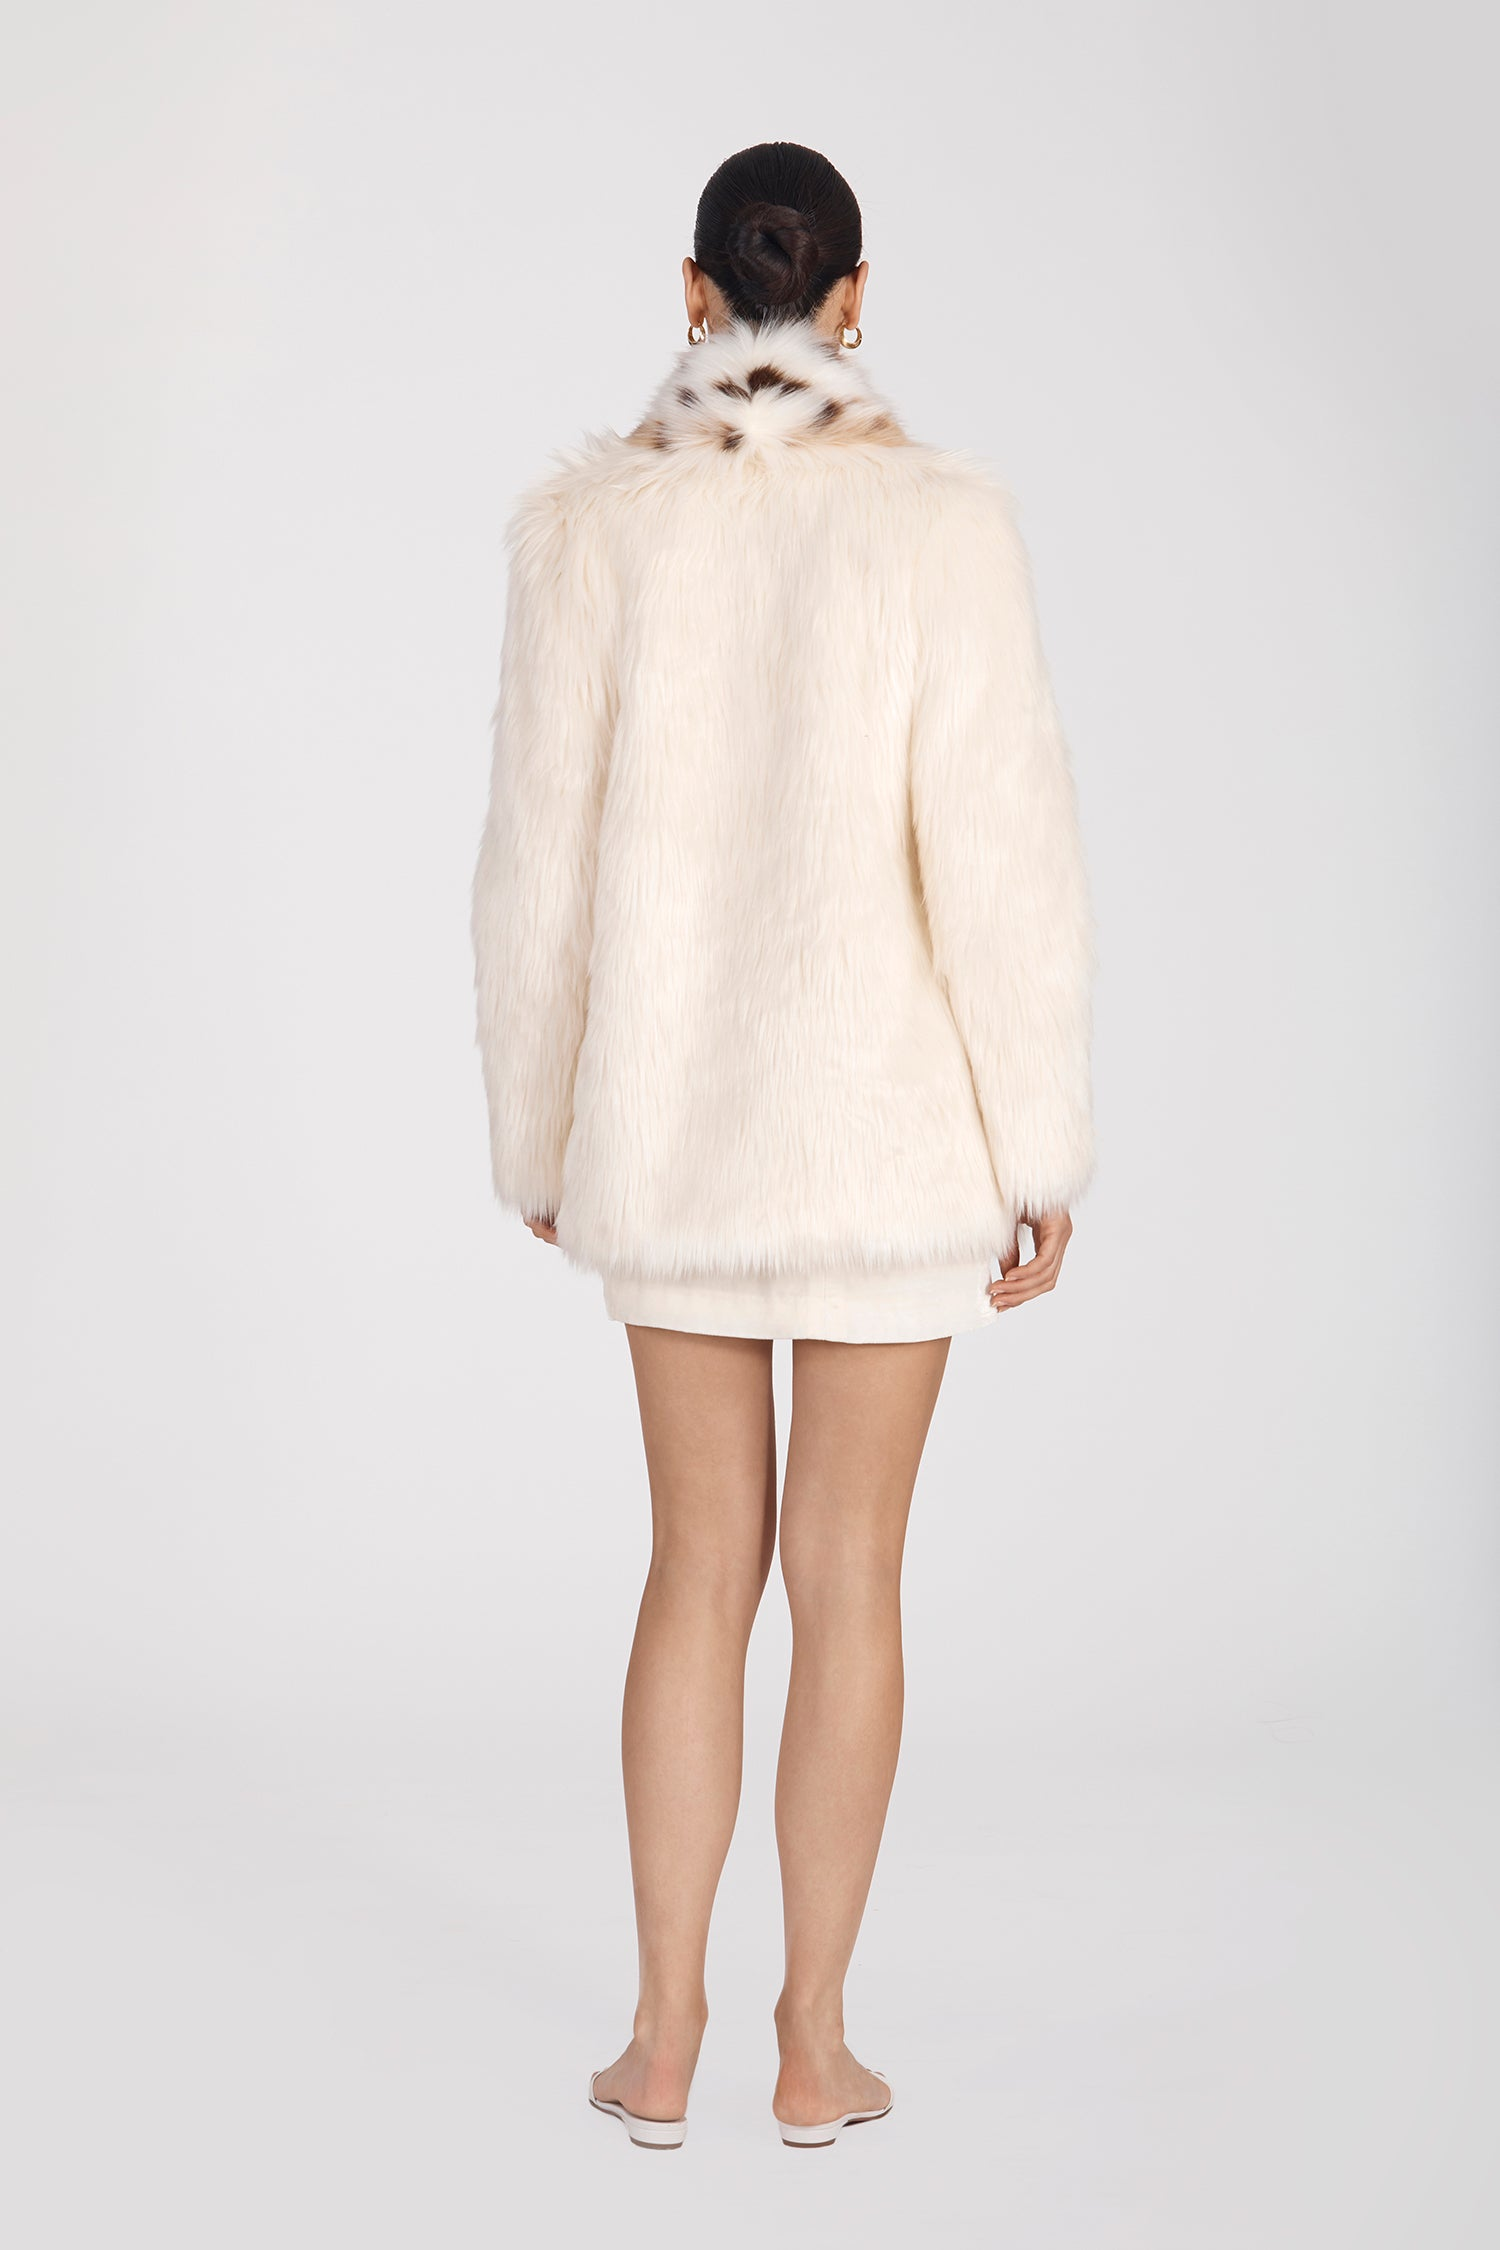 Marei1998's Tiger Lily Faux Fur Coat In White Color. Featuring Oversized Silhouette And Shawl Collar. Spotted Collar Design Contrasts The Elegant White Hue, Creating A Chic Look. As Worn By The Model. Back View. Resort 2020 Collection - Furless Friendship.